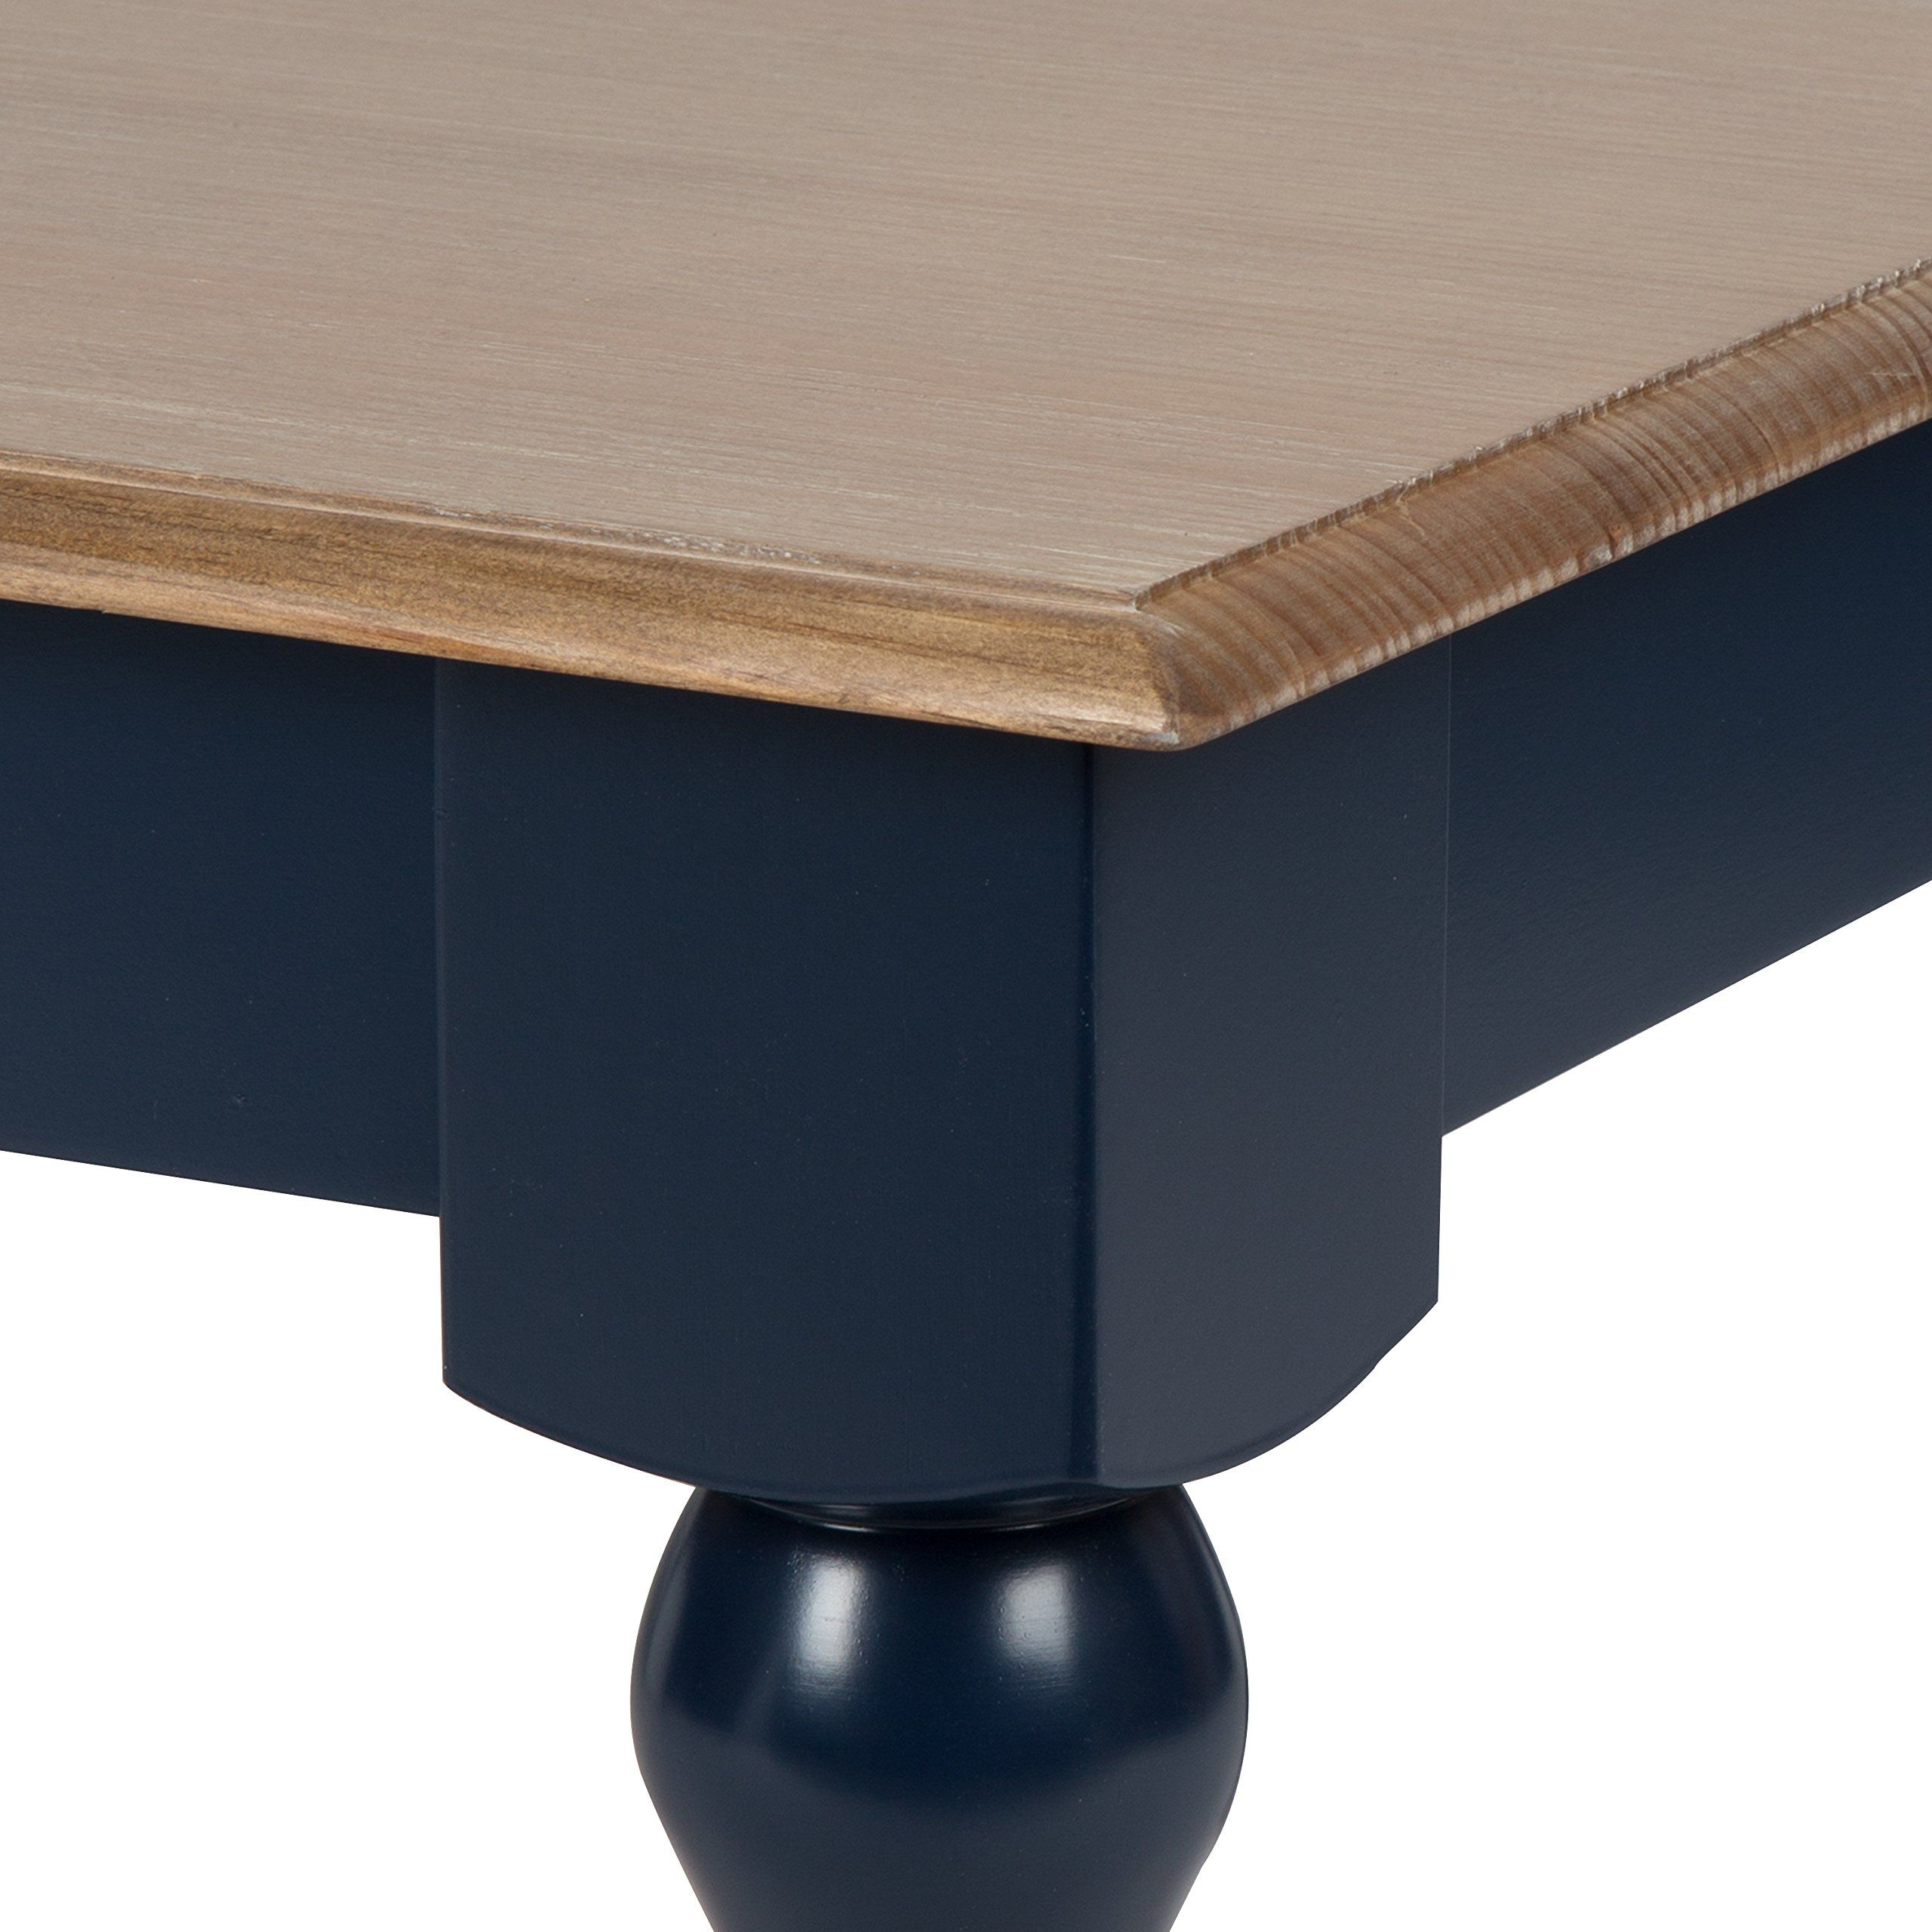 Kate And Laurel Sophia Rustic Wood Top Coffee Table Navy Blue